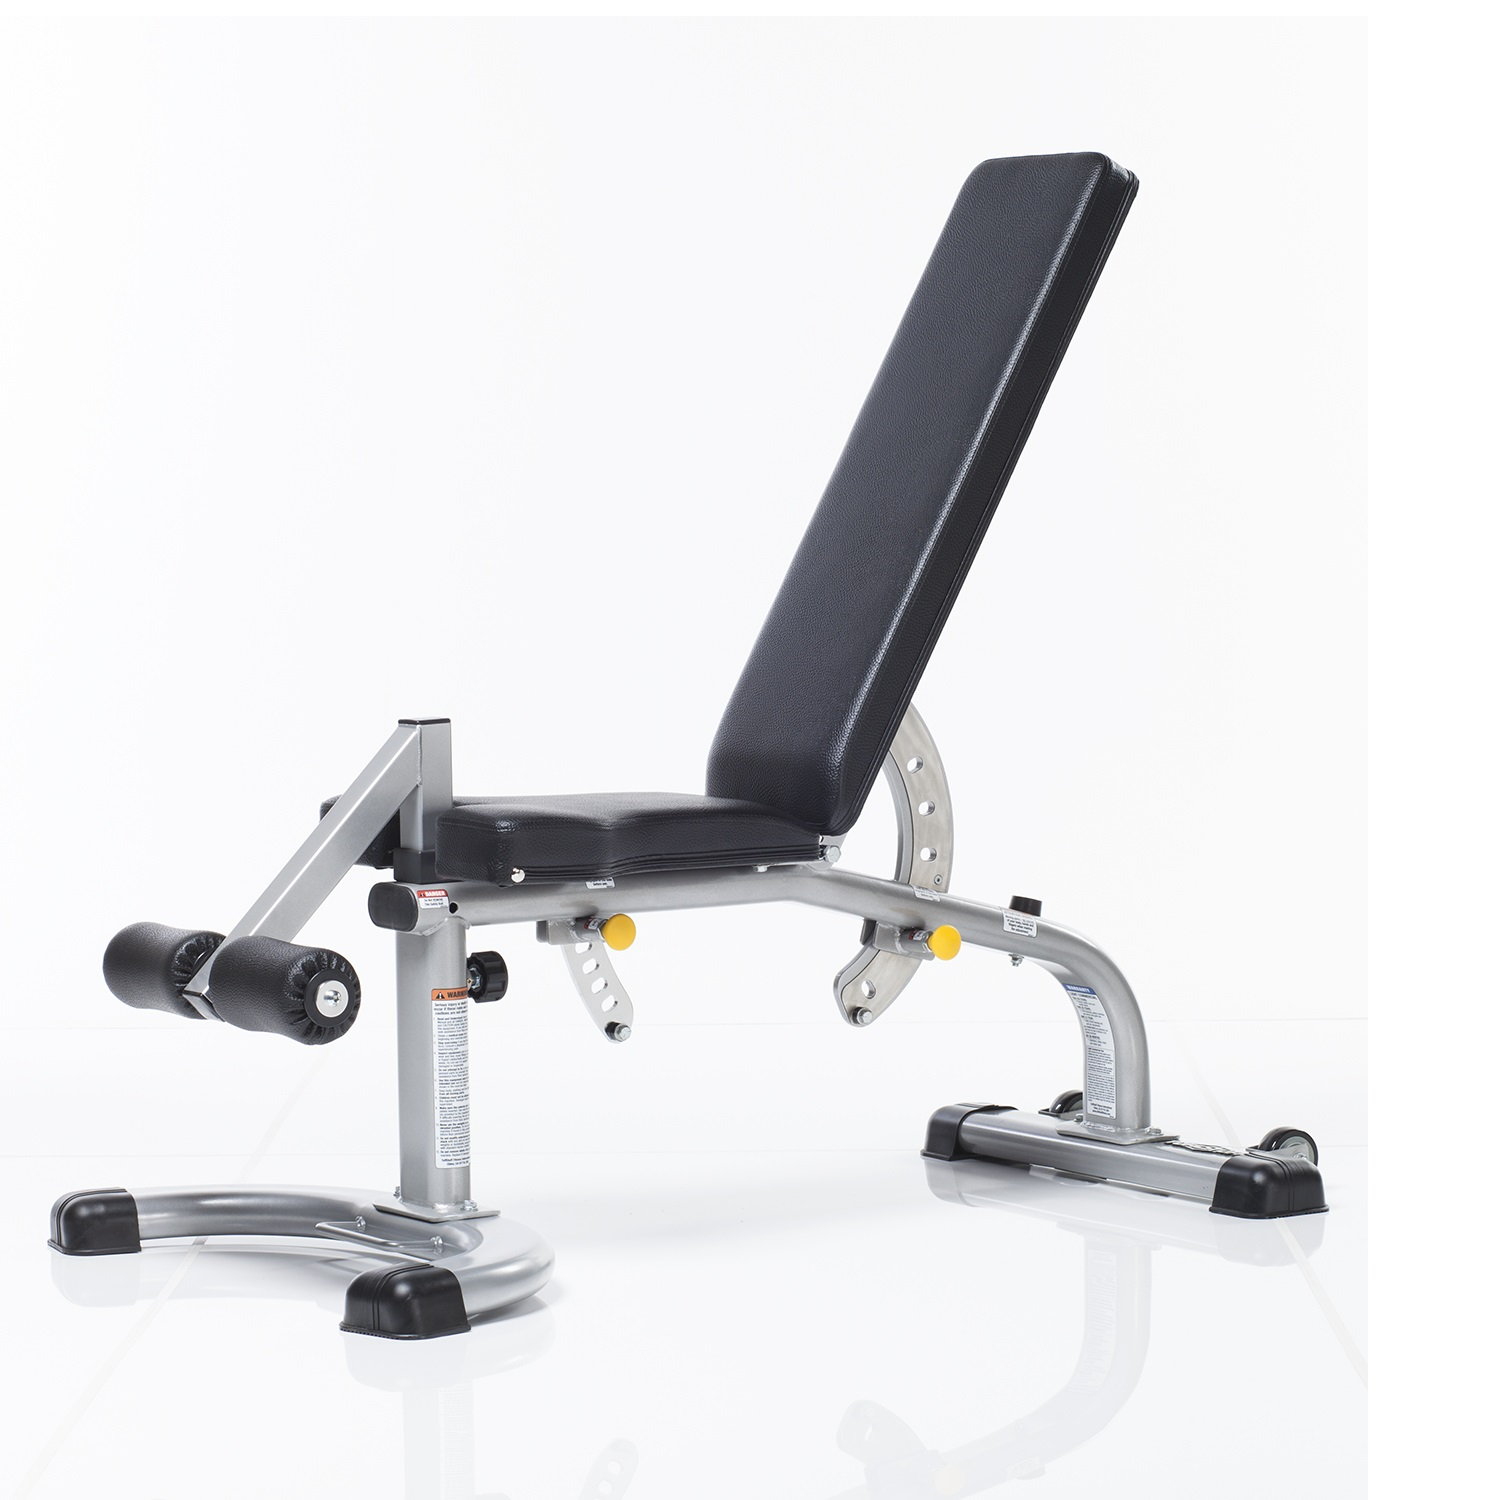 KDS/CMB-375 Multi-Purpose Bench